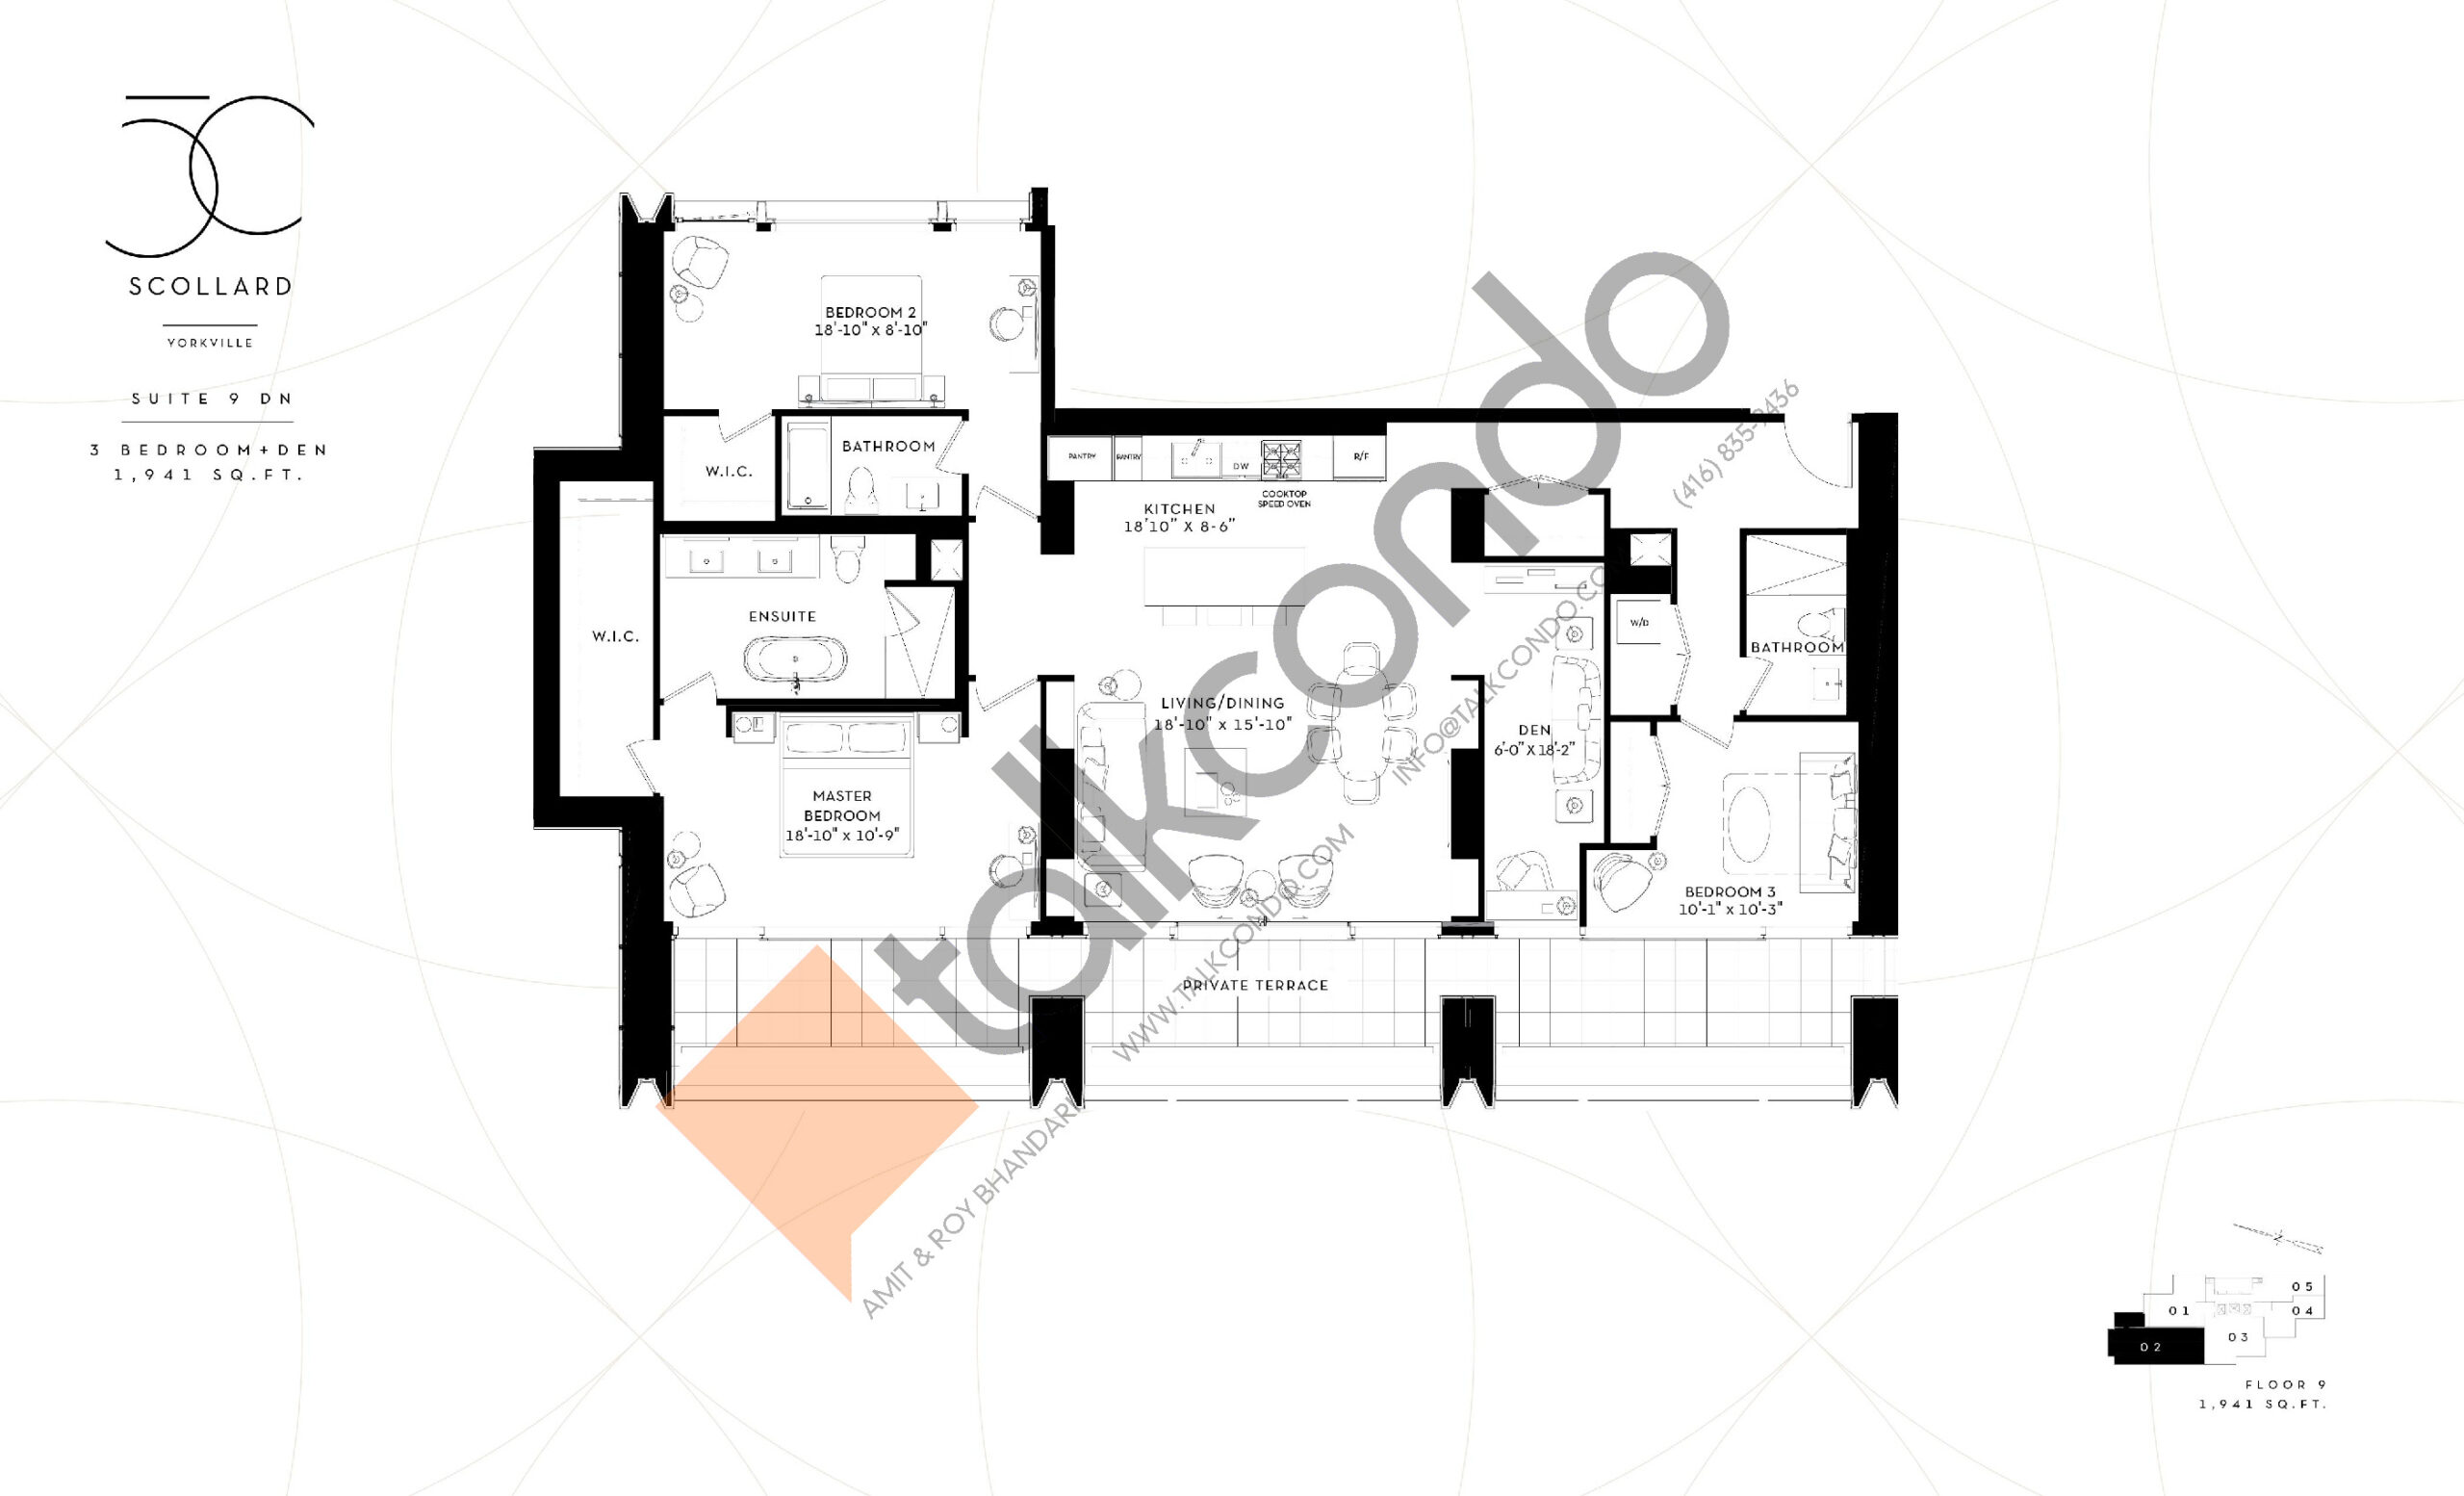 Suite 9 DN Floor Plan at Fifty Scollard Condos - 1941 sq.ft